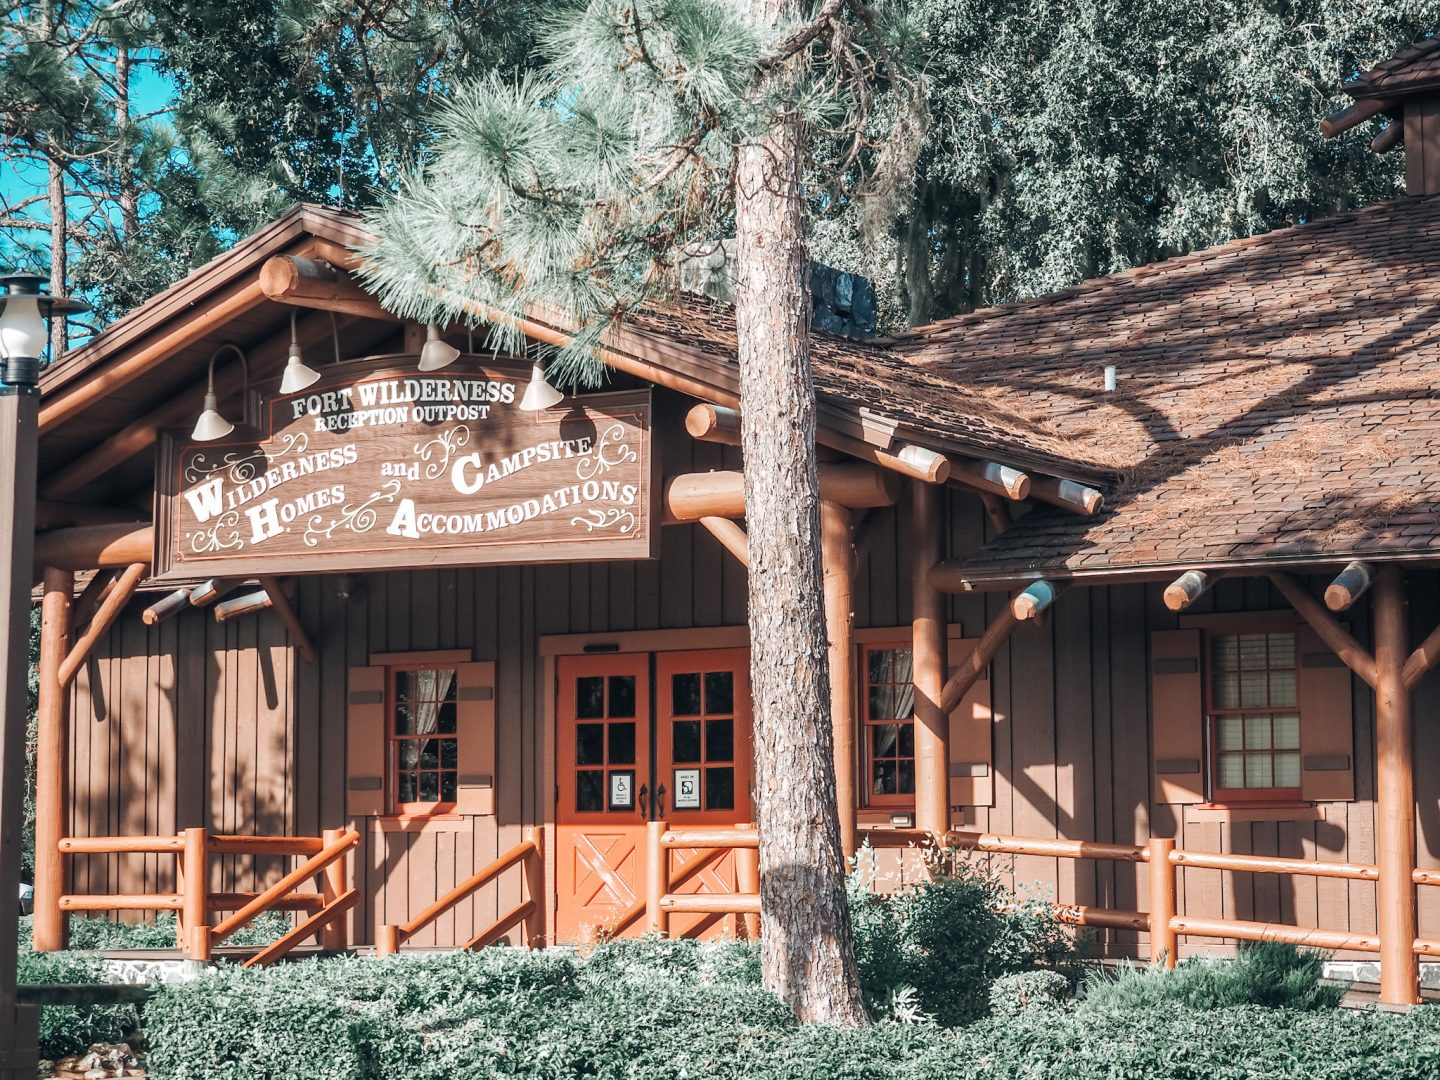 Fort Wilderness Resort and Campgrounds at Disney